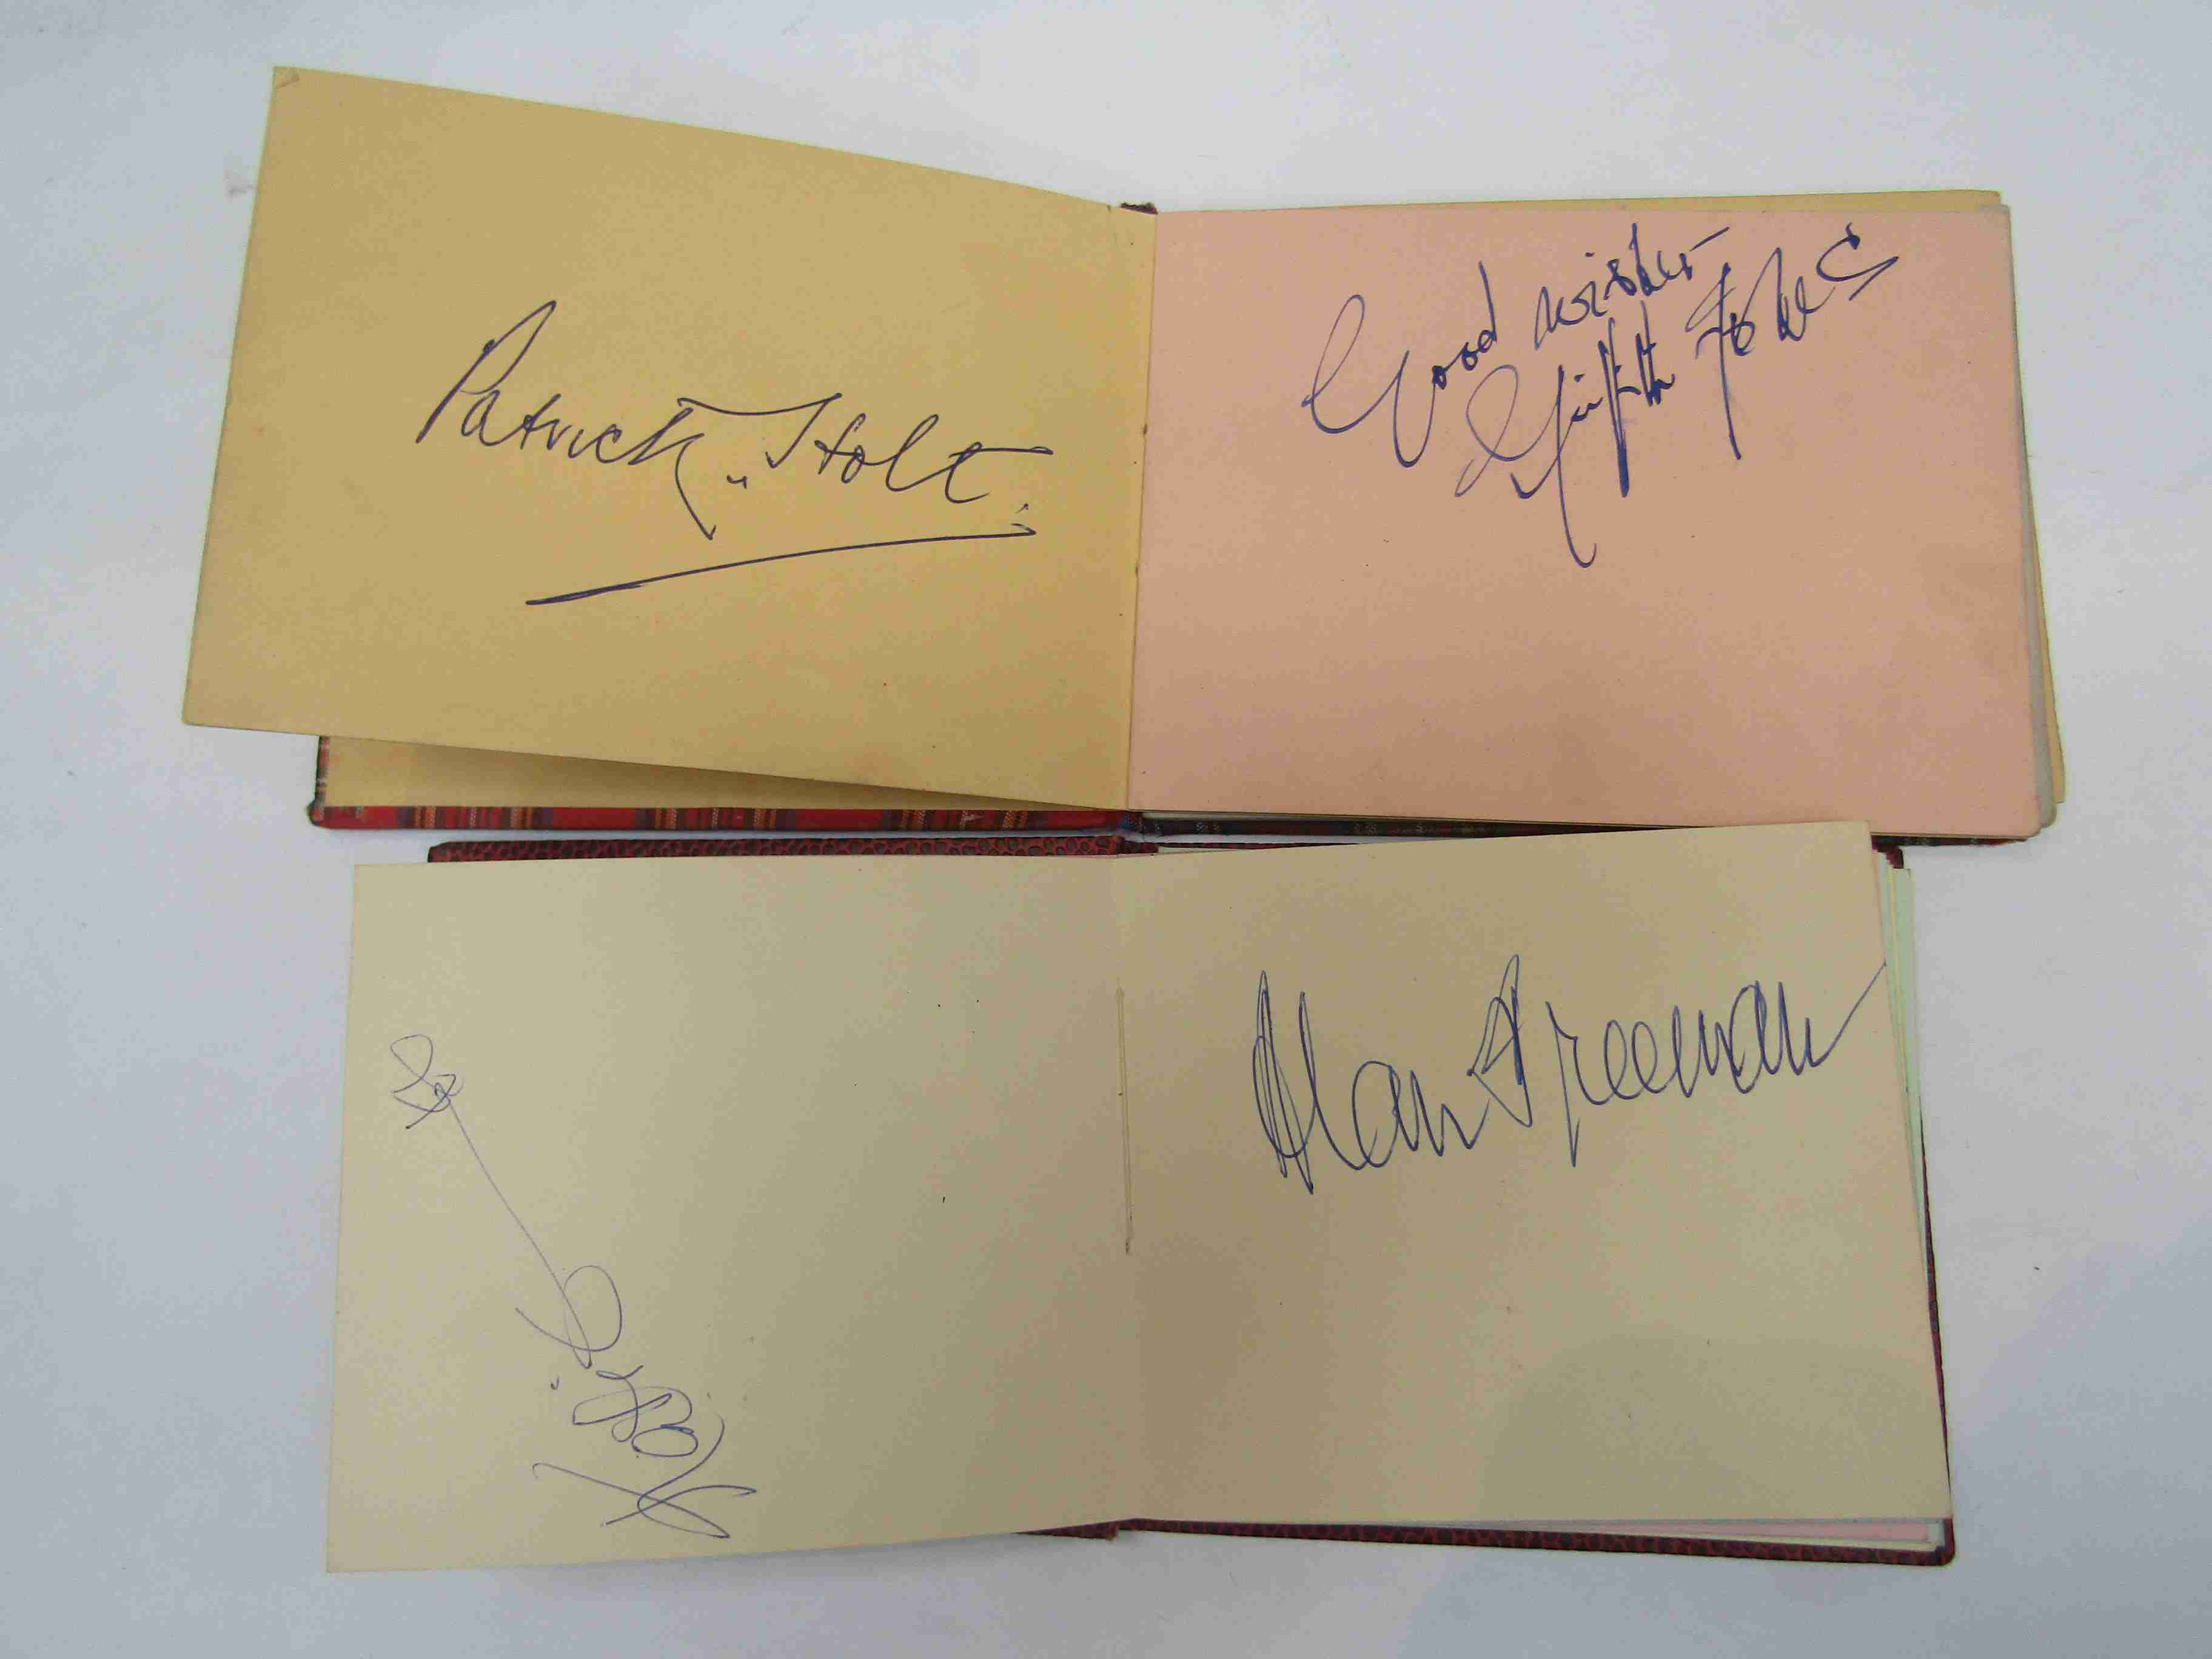 Two 1950s/60s autograph books containing autographs by Benny Hill, Honor Blackman, Barbara Shelley, - Image 9 of 34